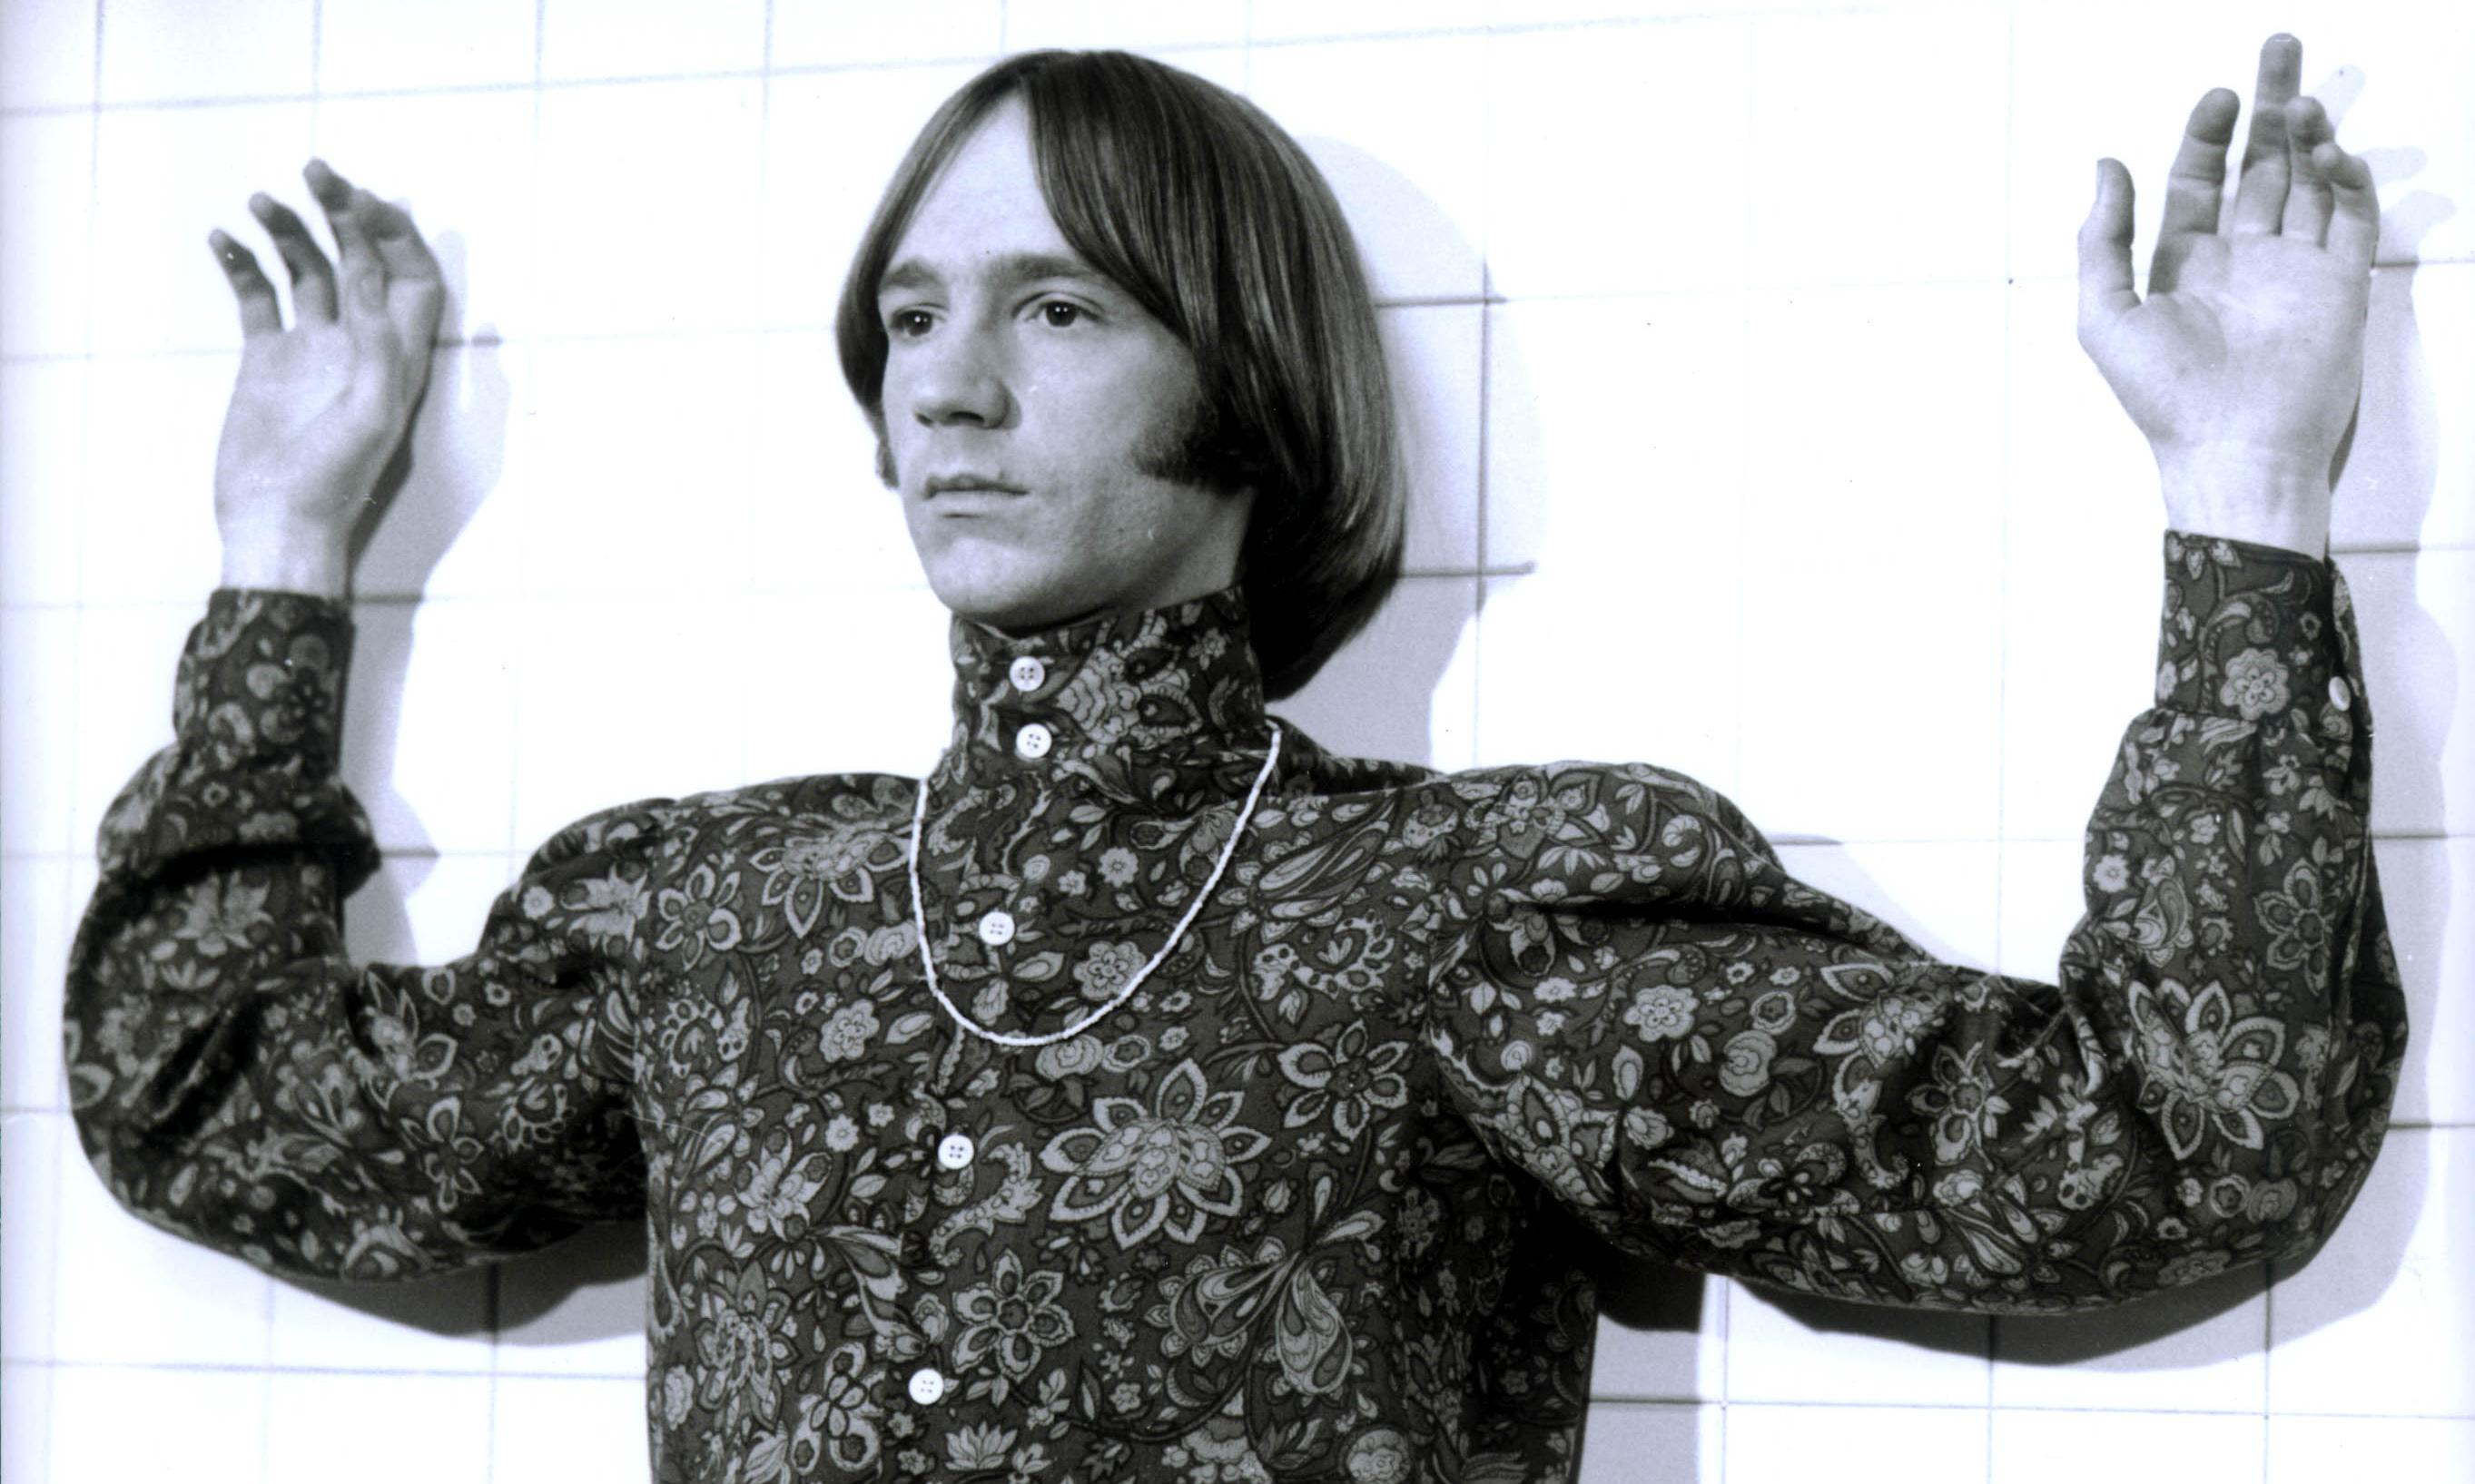 Peter Tork, bassist for the Monkees, dies aged 77